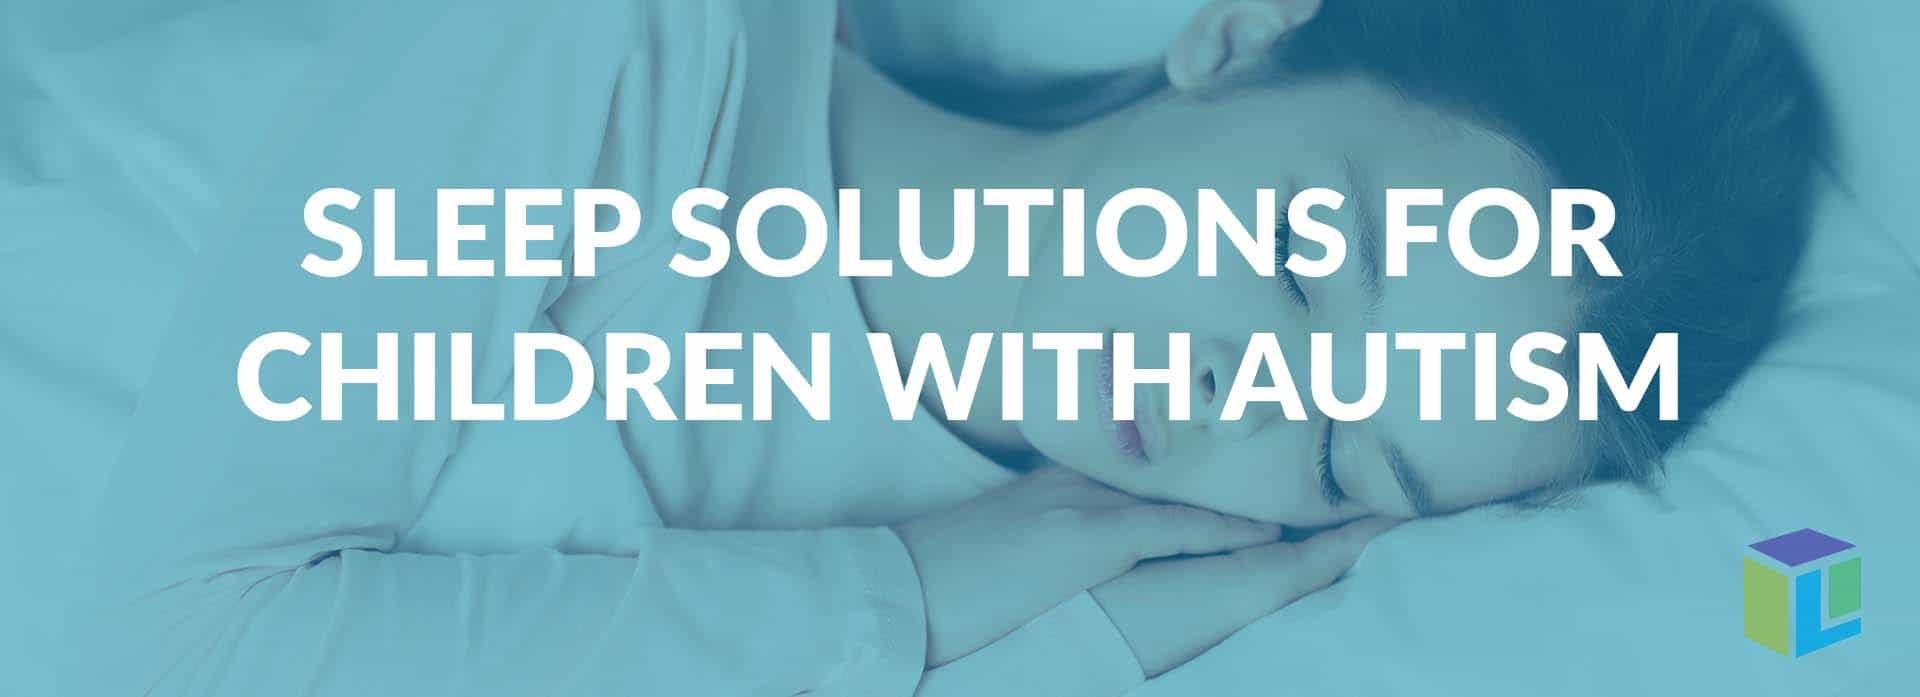 Sleep Solutions For Children With Autism